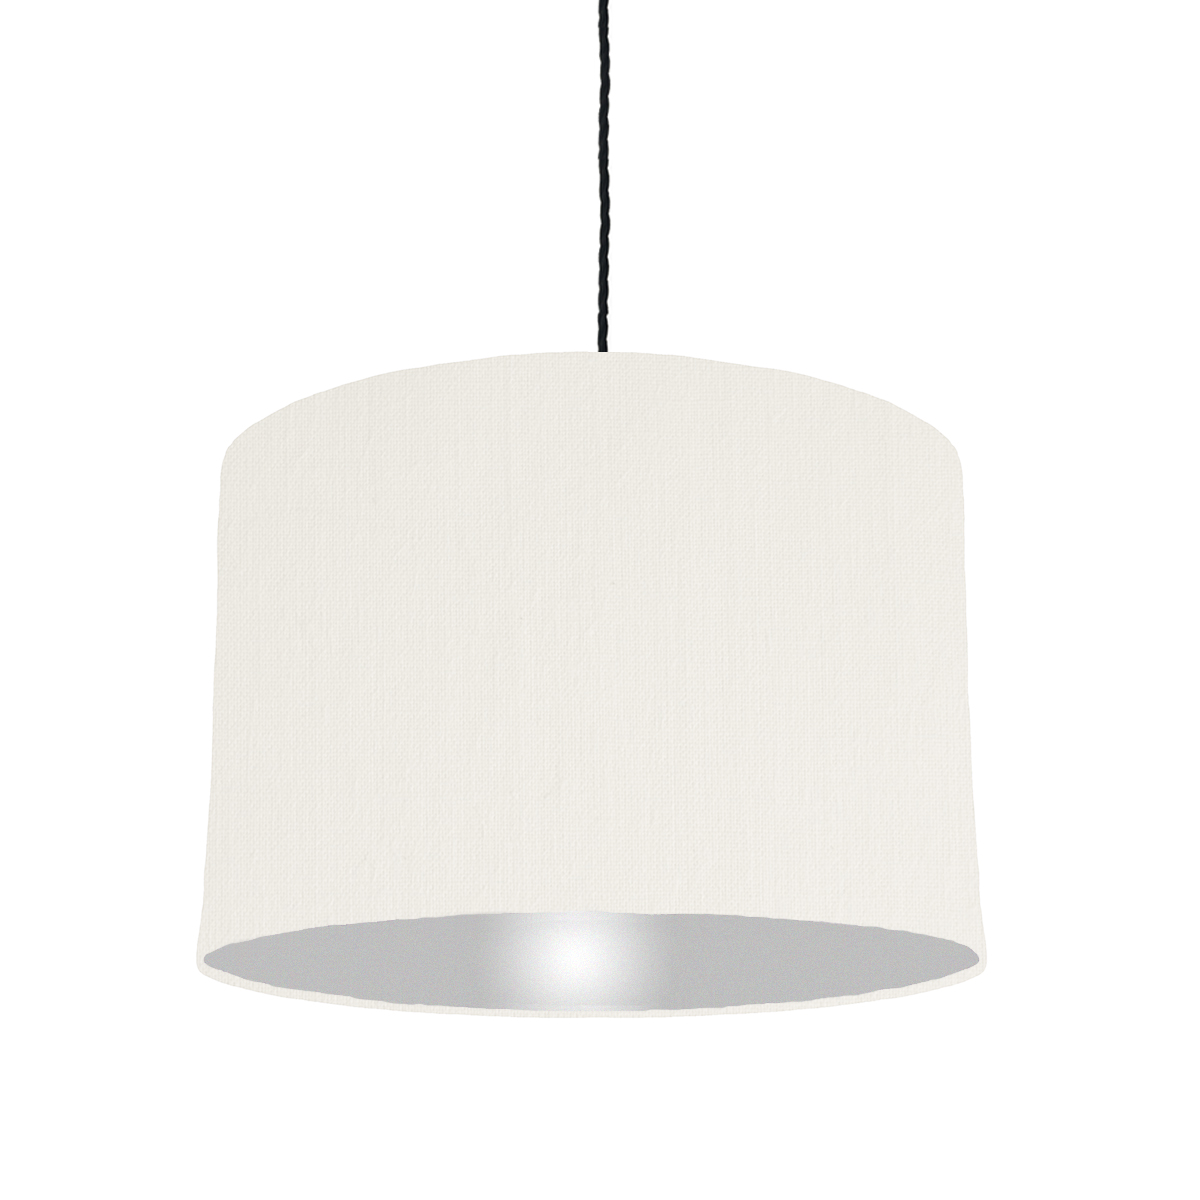 White lampshade with silver lining